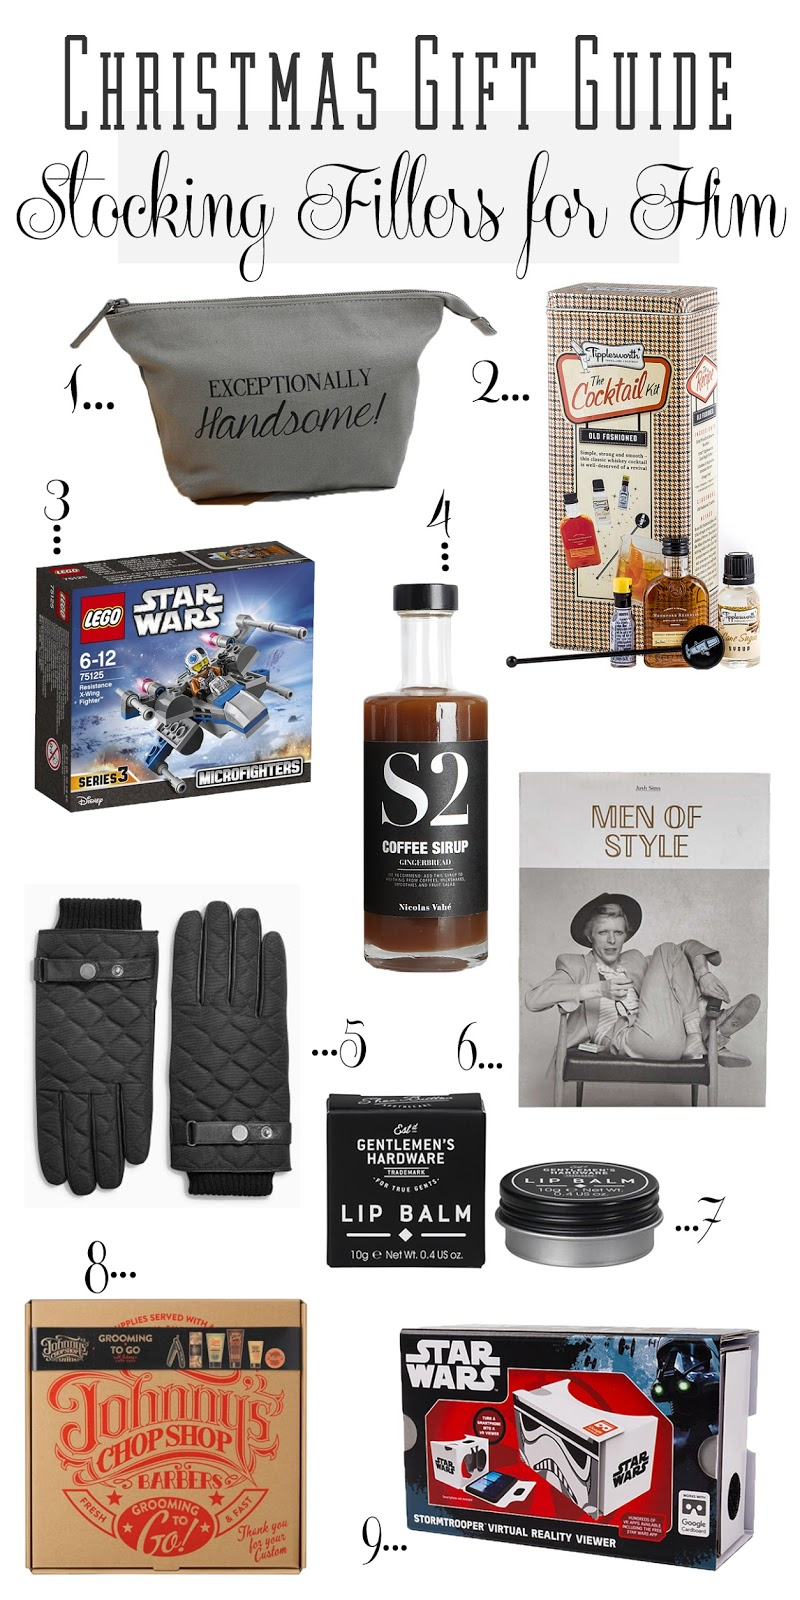 gif-guide-stocking-fillers-for-him